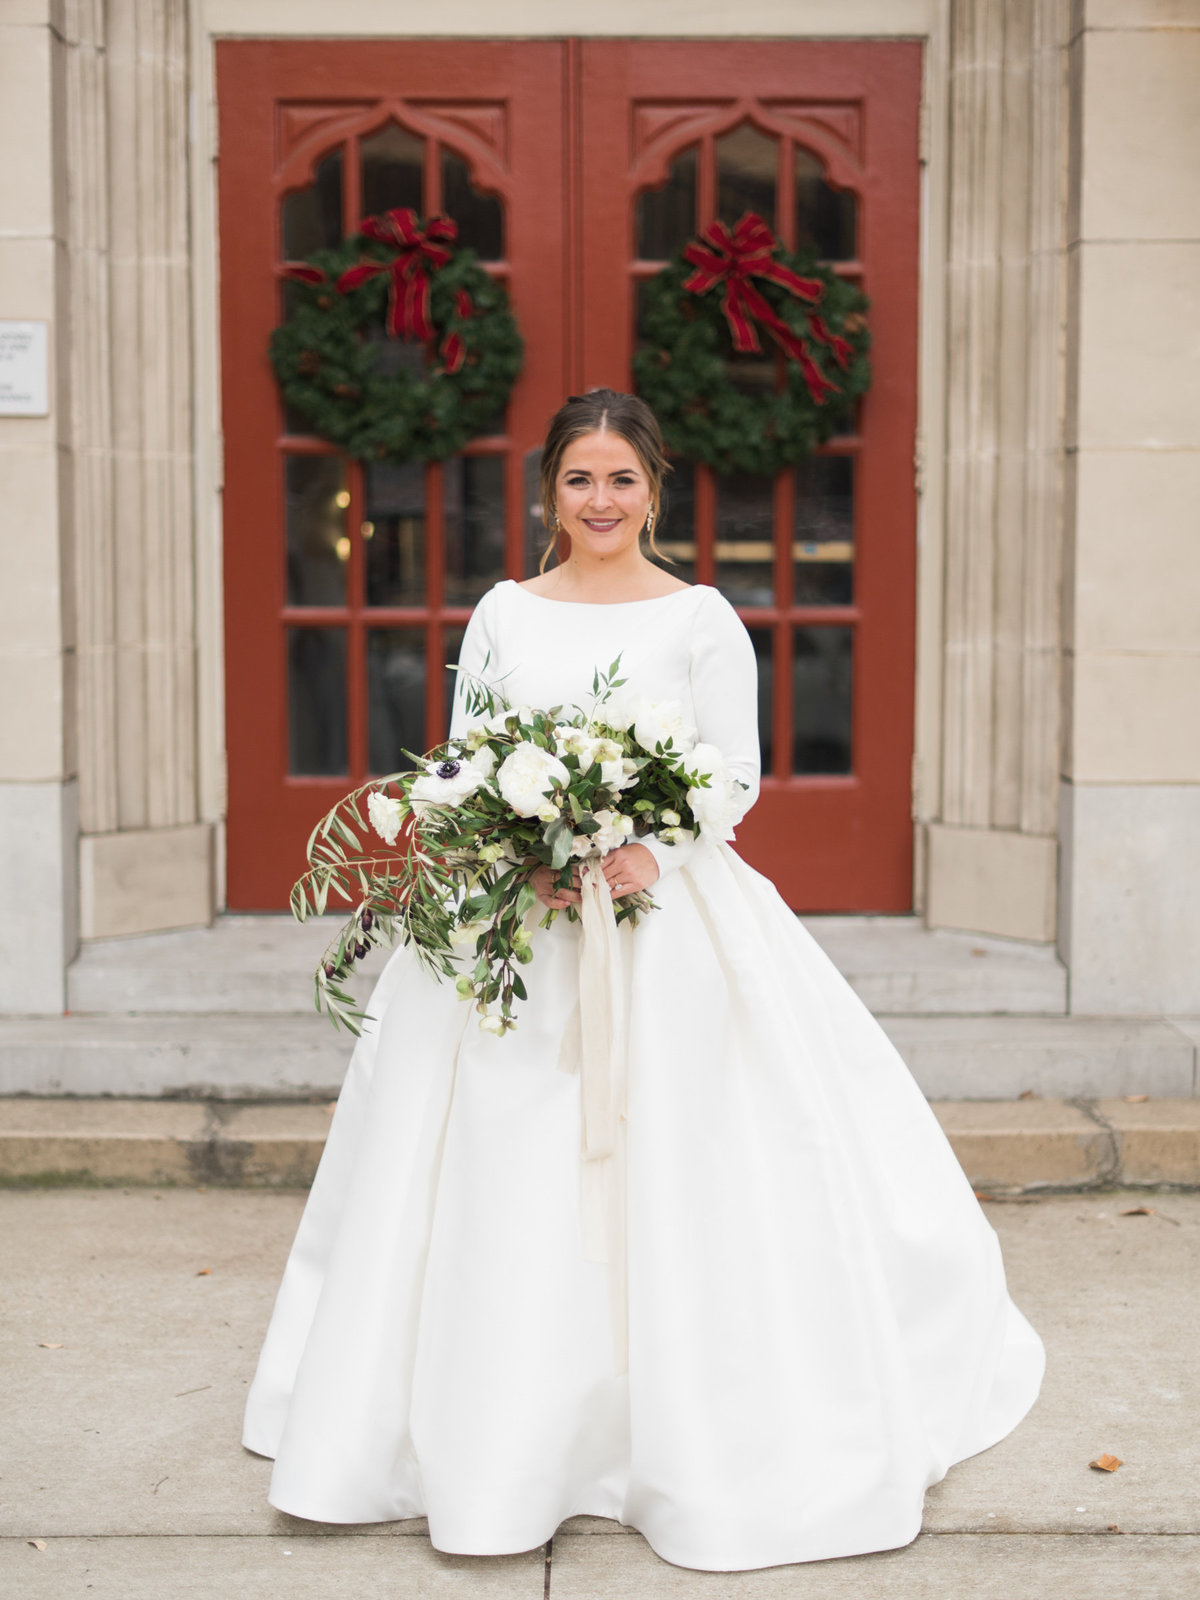 Courtney Hanson Photography - Festive Holiday Wedding in Dallas at Hickory Street Annex-3857